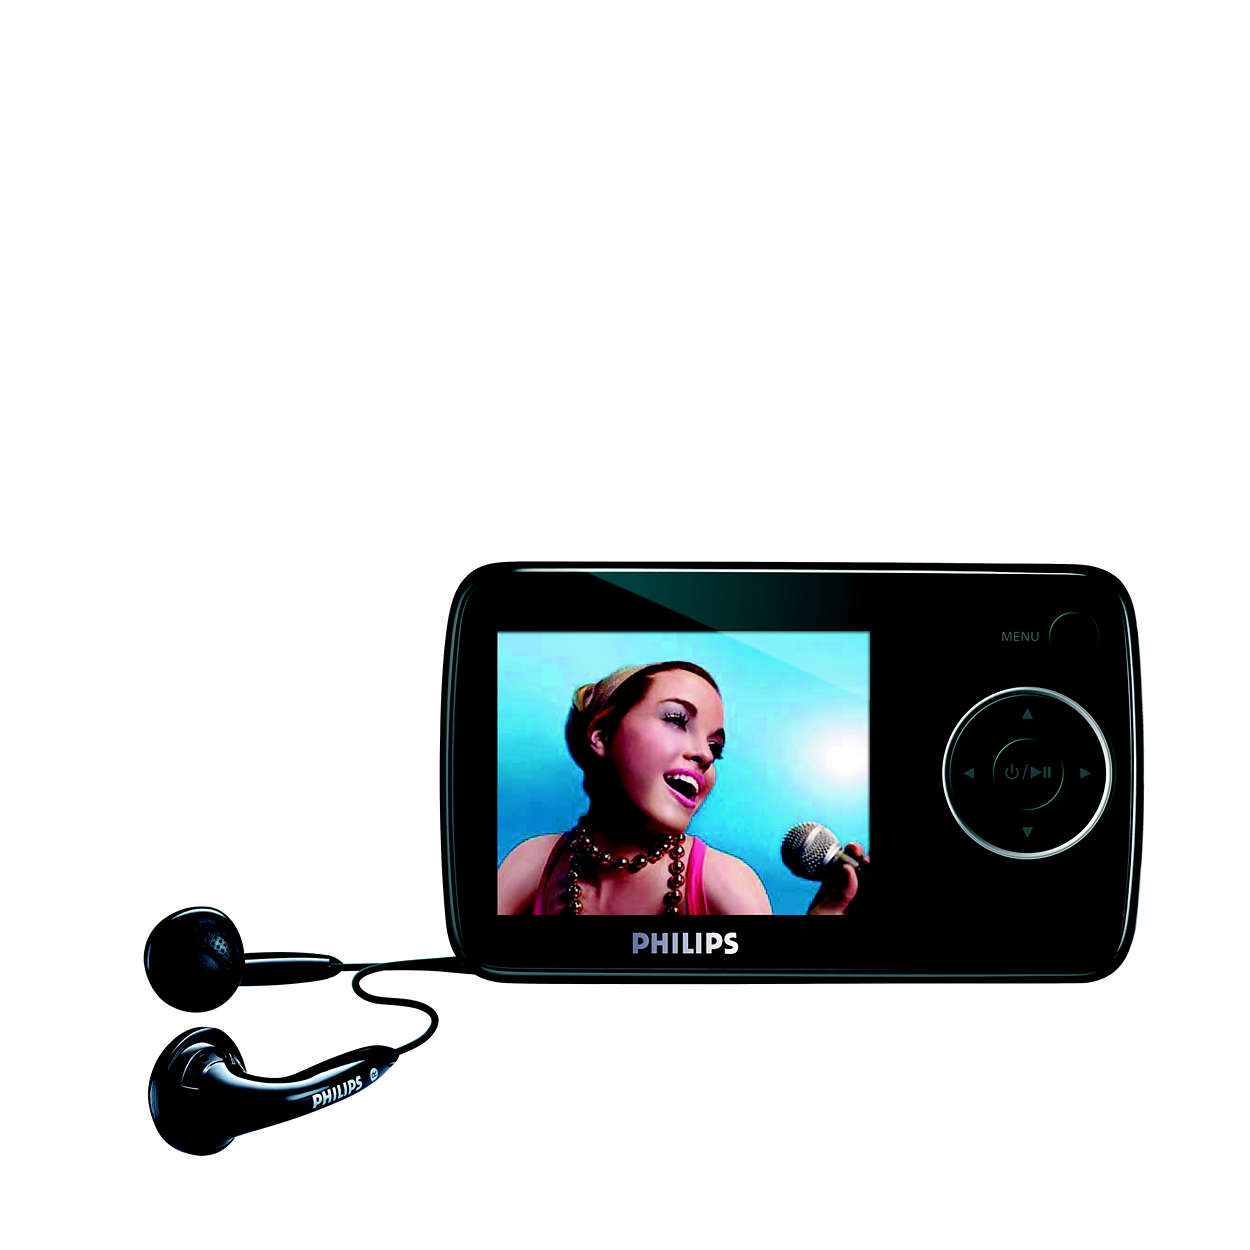 gogear mp3 video player software download